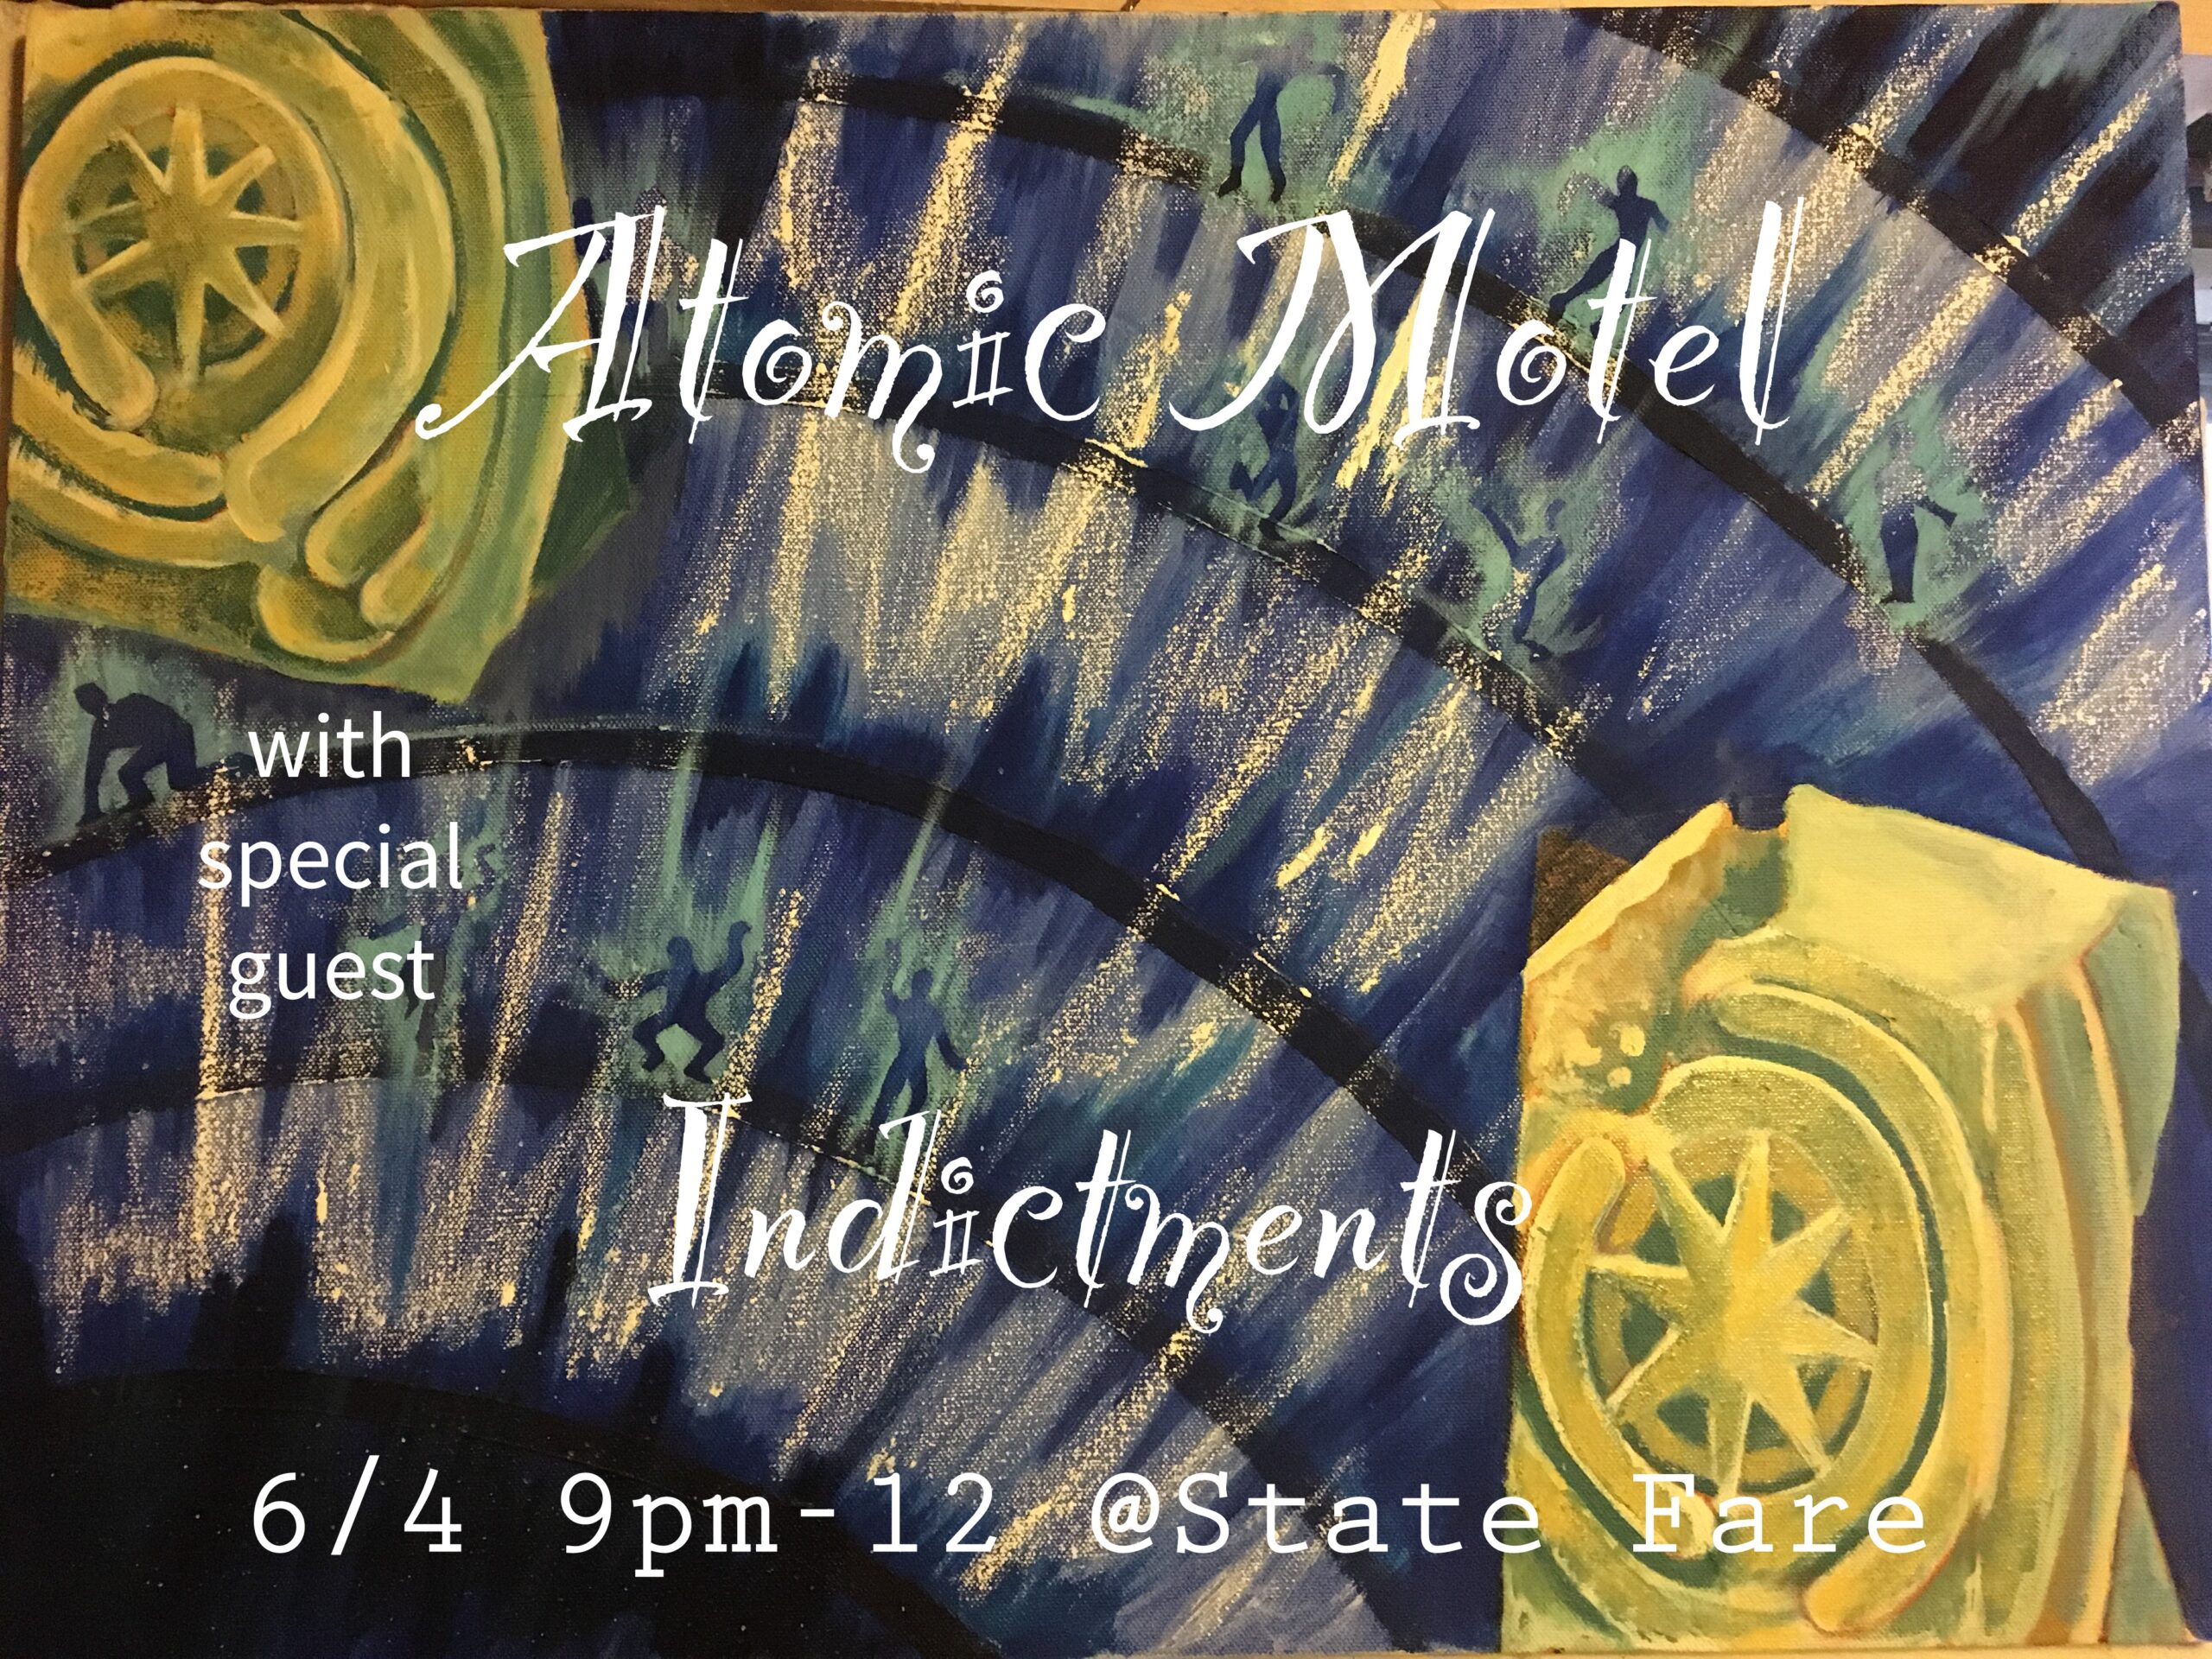 Atomic Motel with Indictments